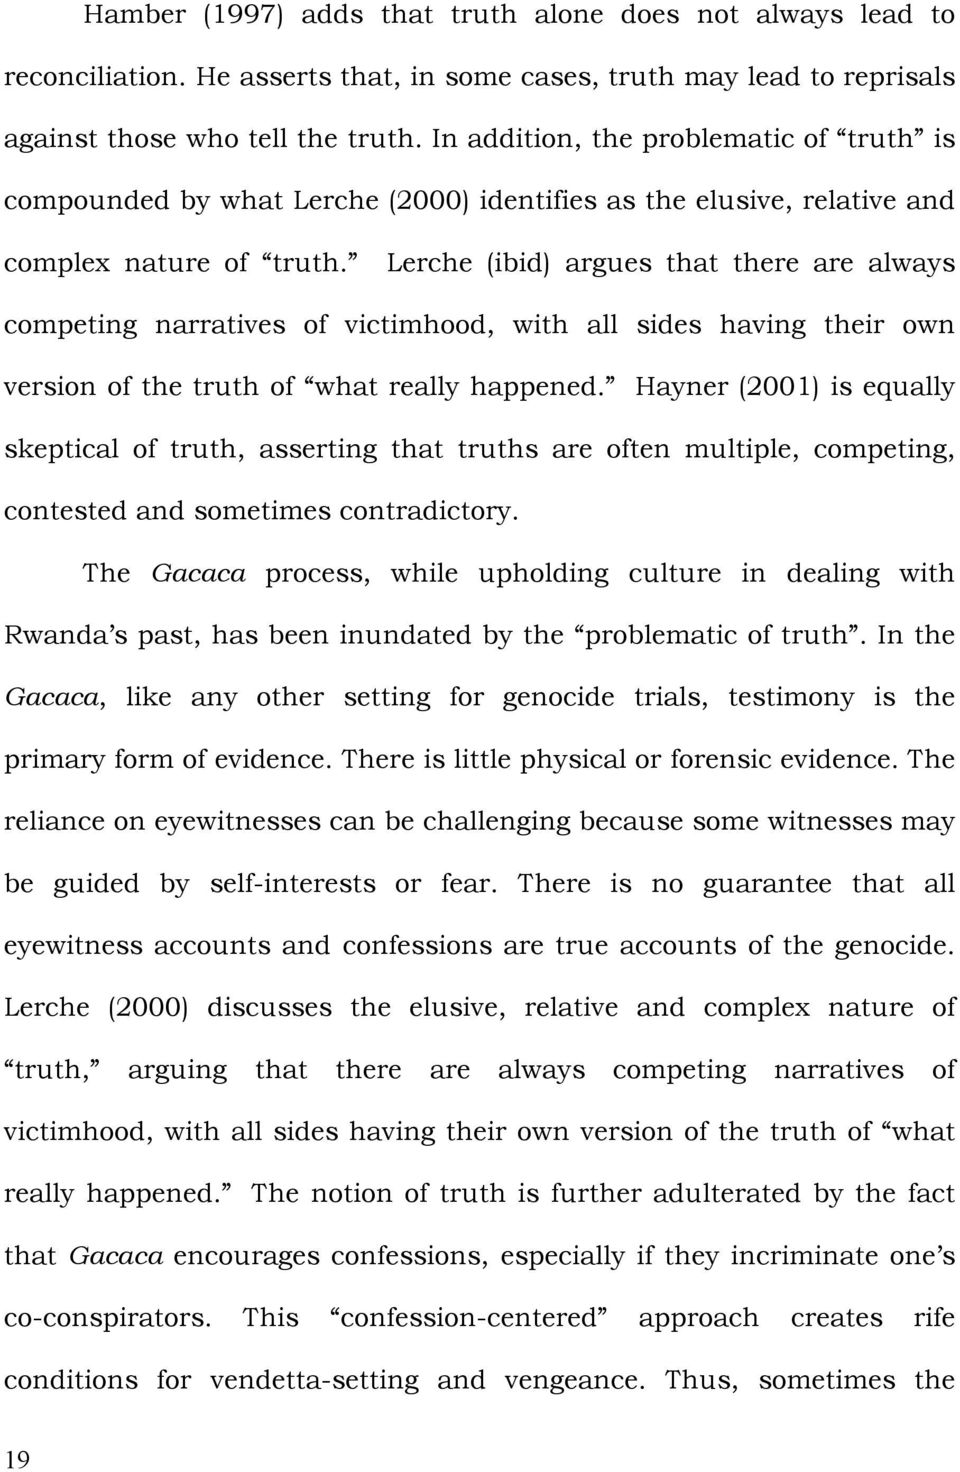 Lerche (ibid) argues that there are always competing narratives of victimhood, with all sides having their own version of the truth of what really happened.